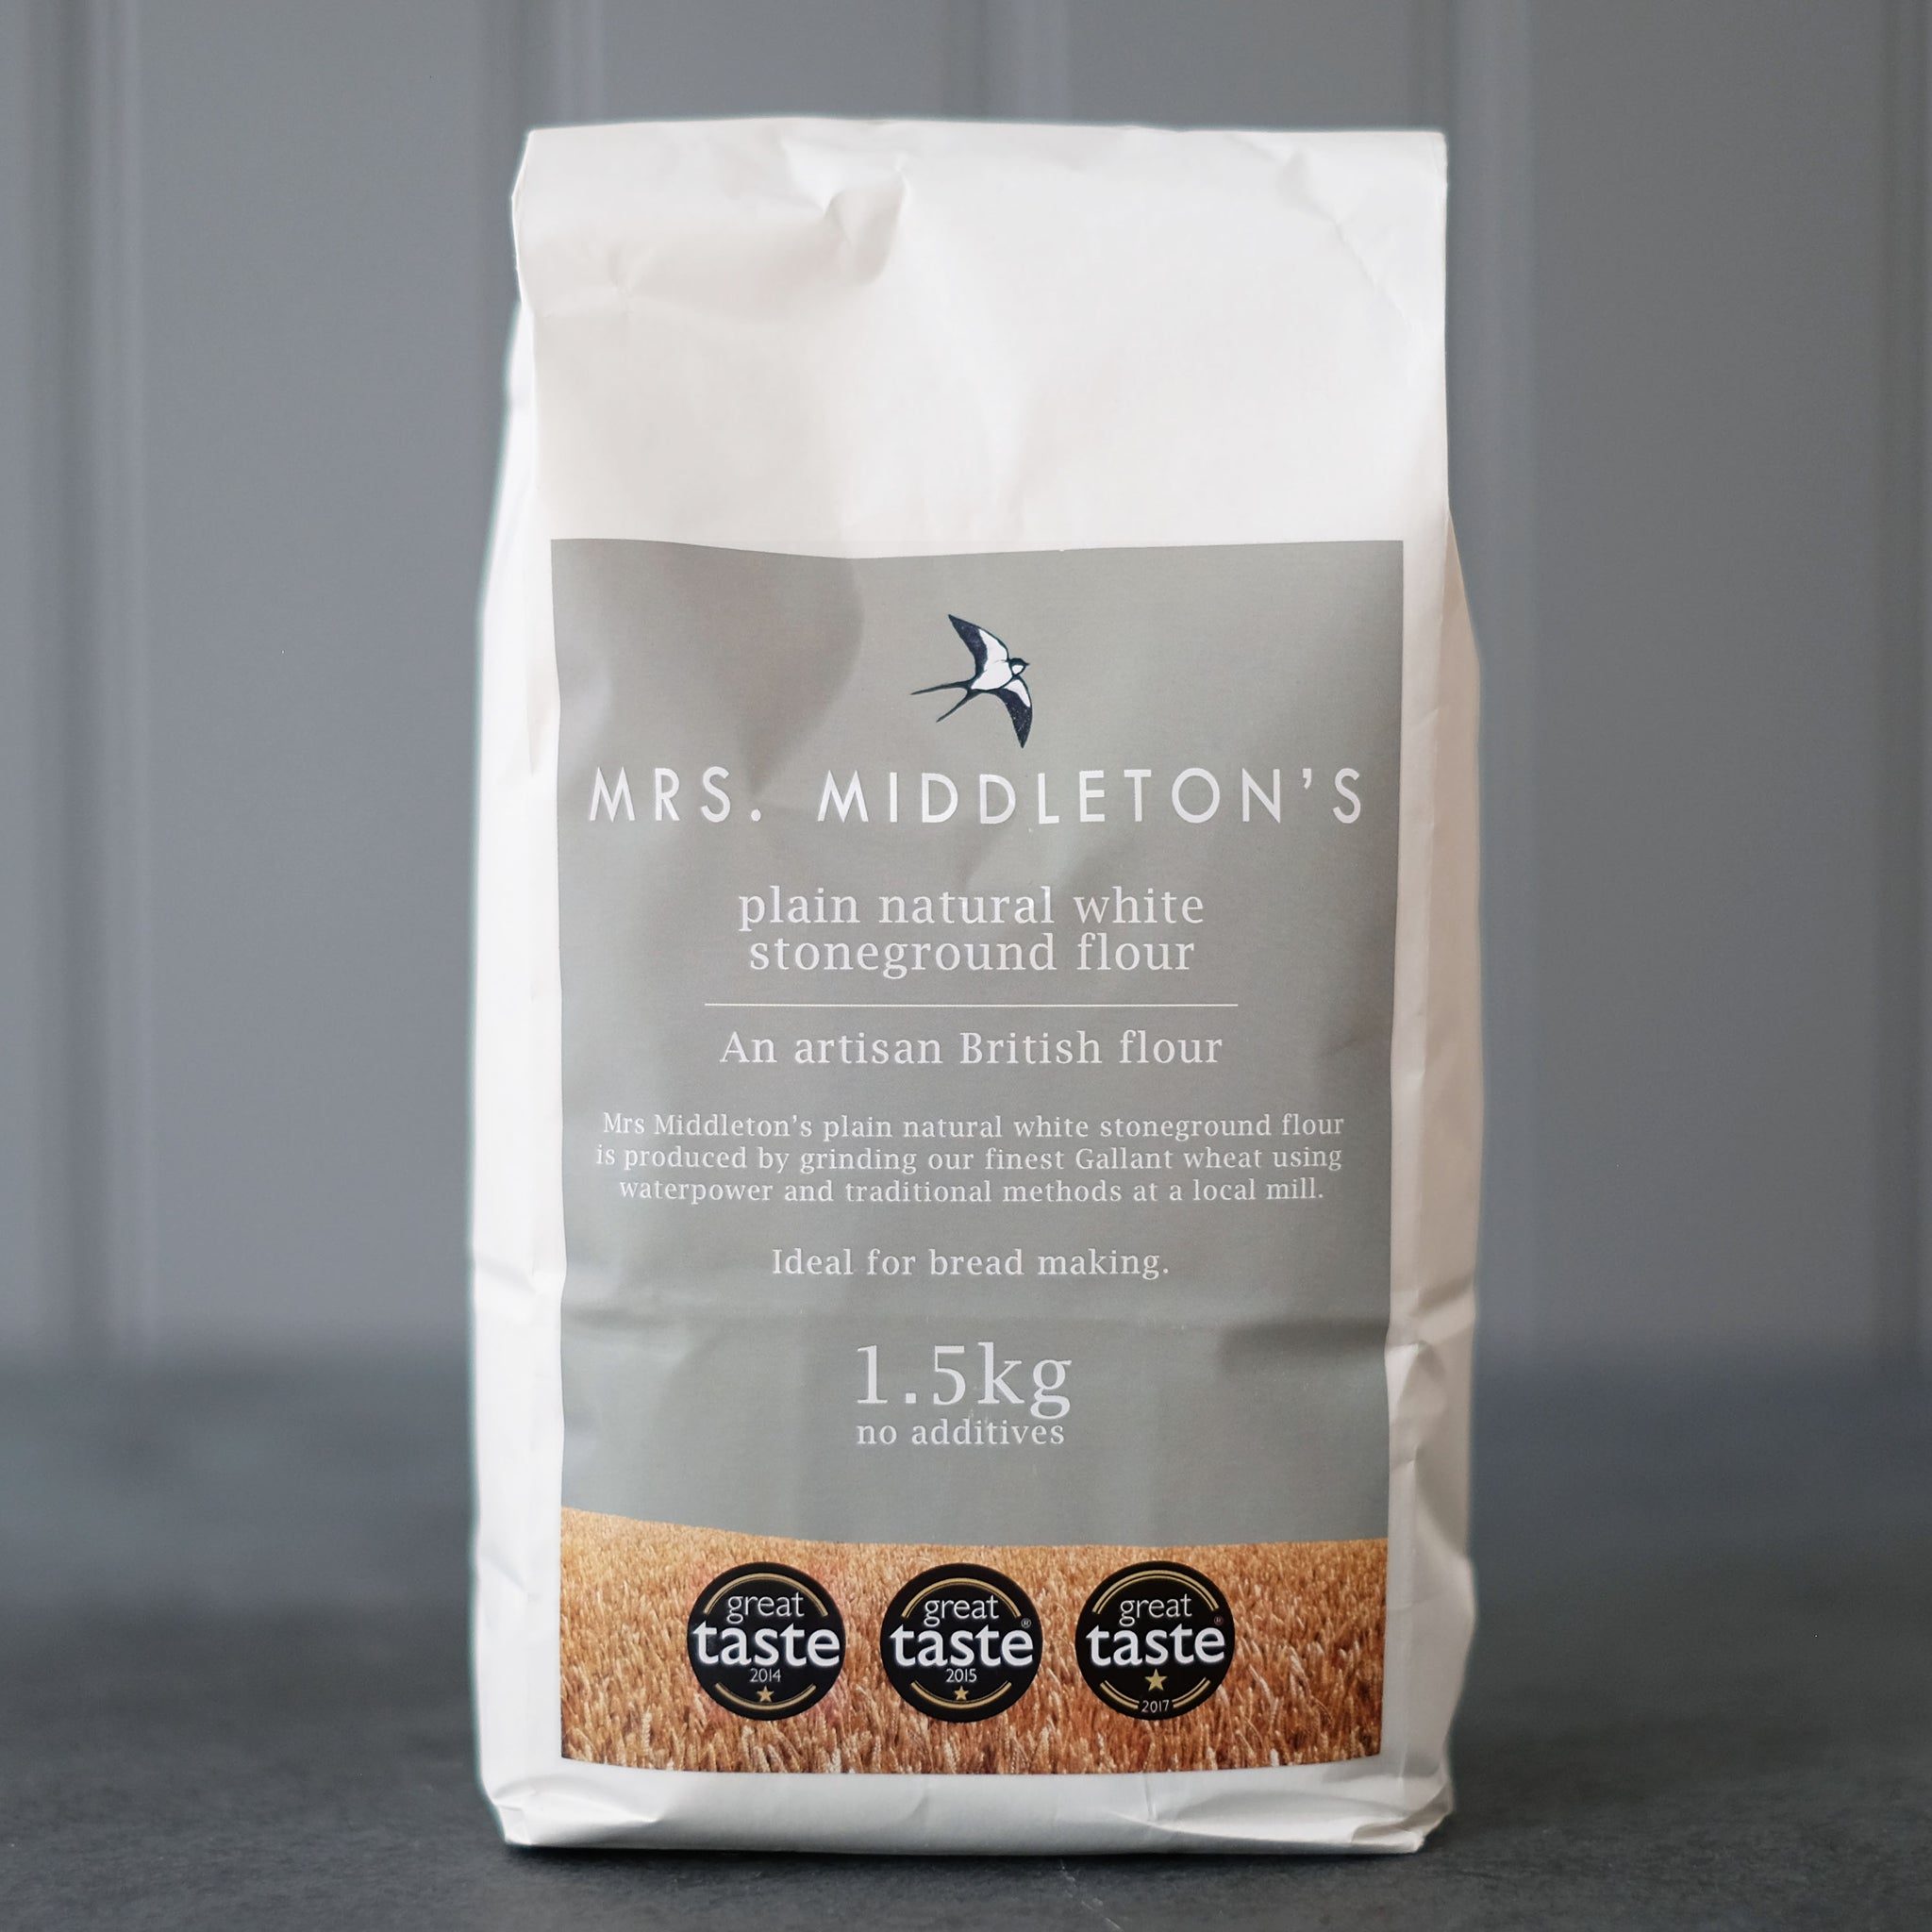 Plain natural white stoneground flour